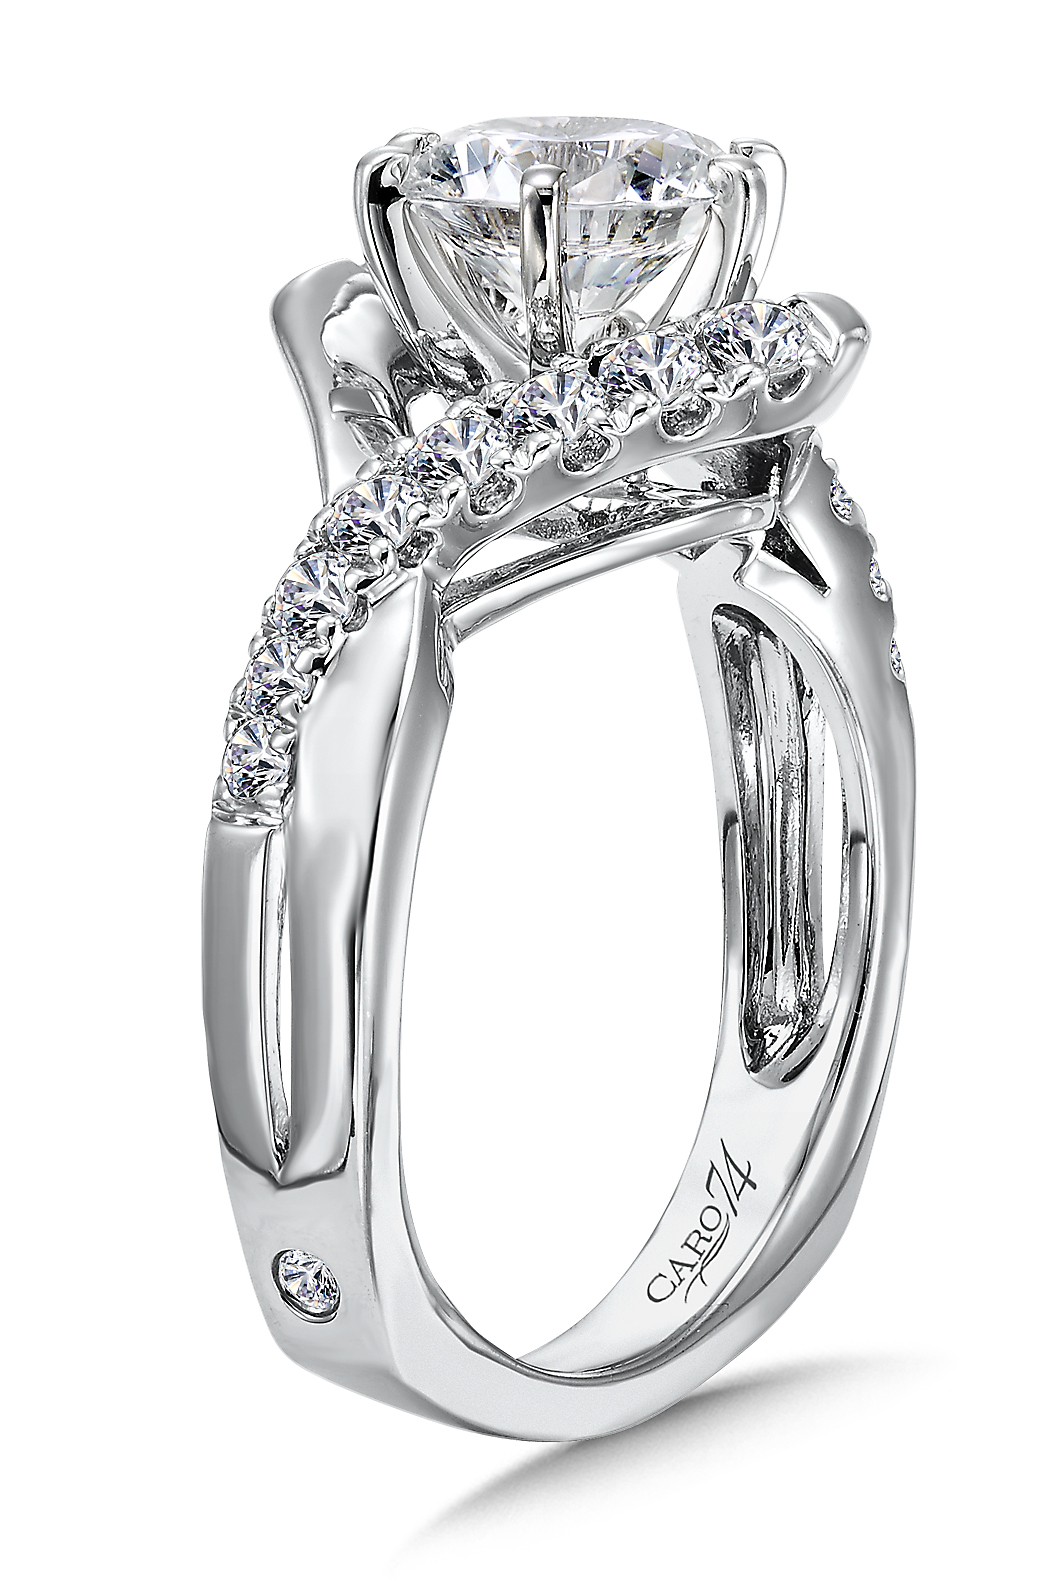 Wholesale Custom Engagement Rings Dallas